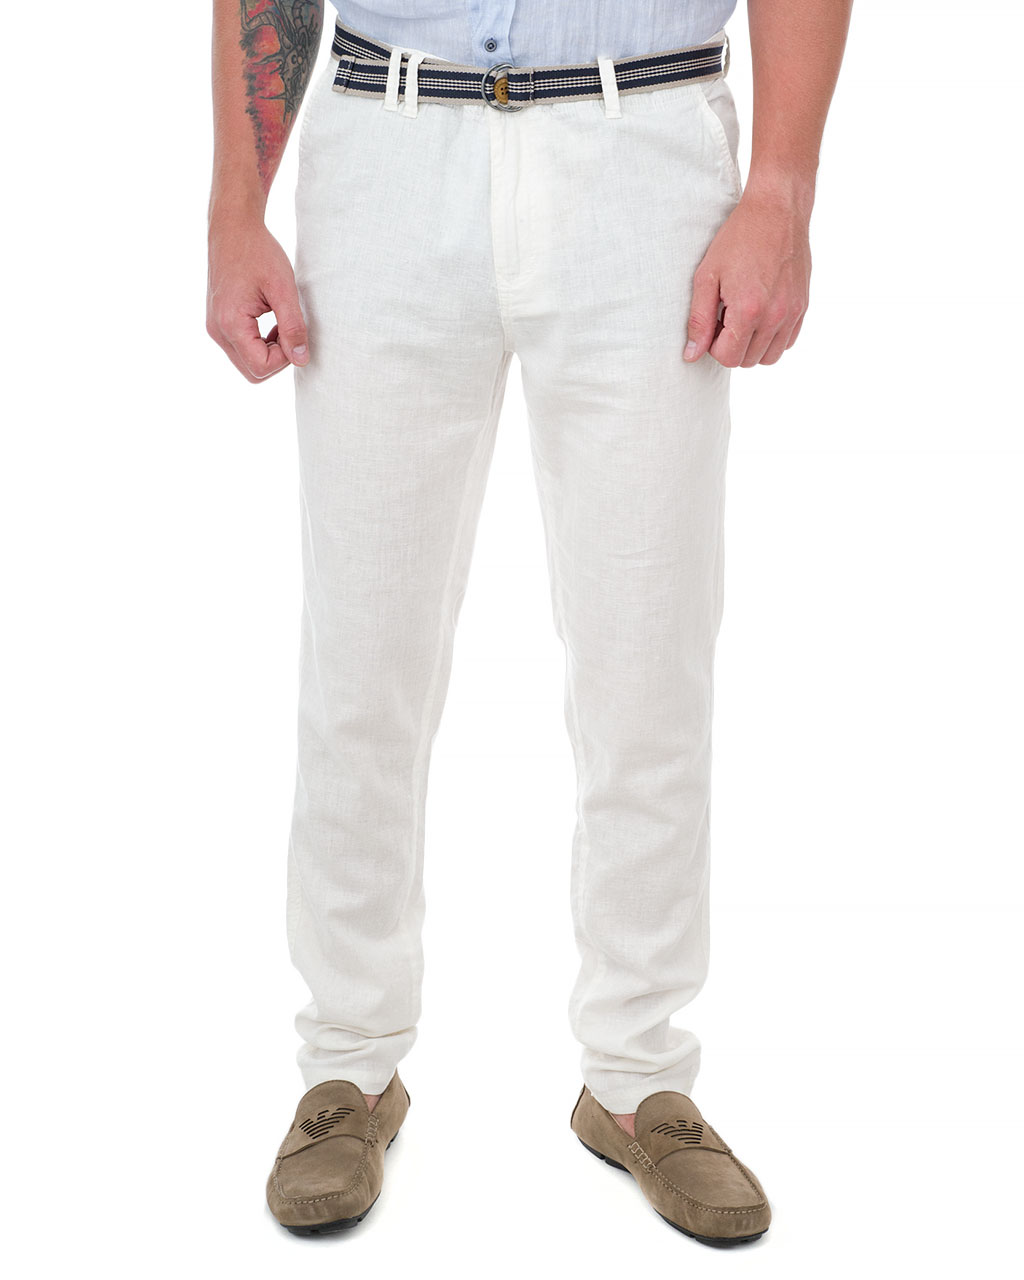 Men's trousers 20708728-70005/91 (1)